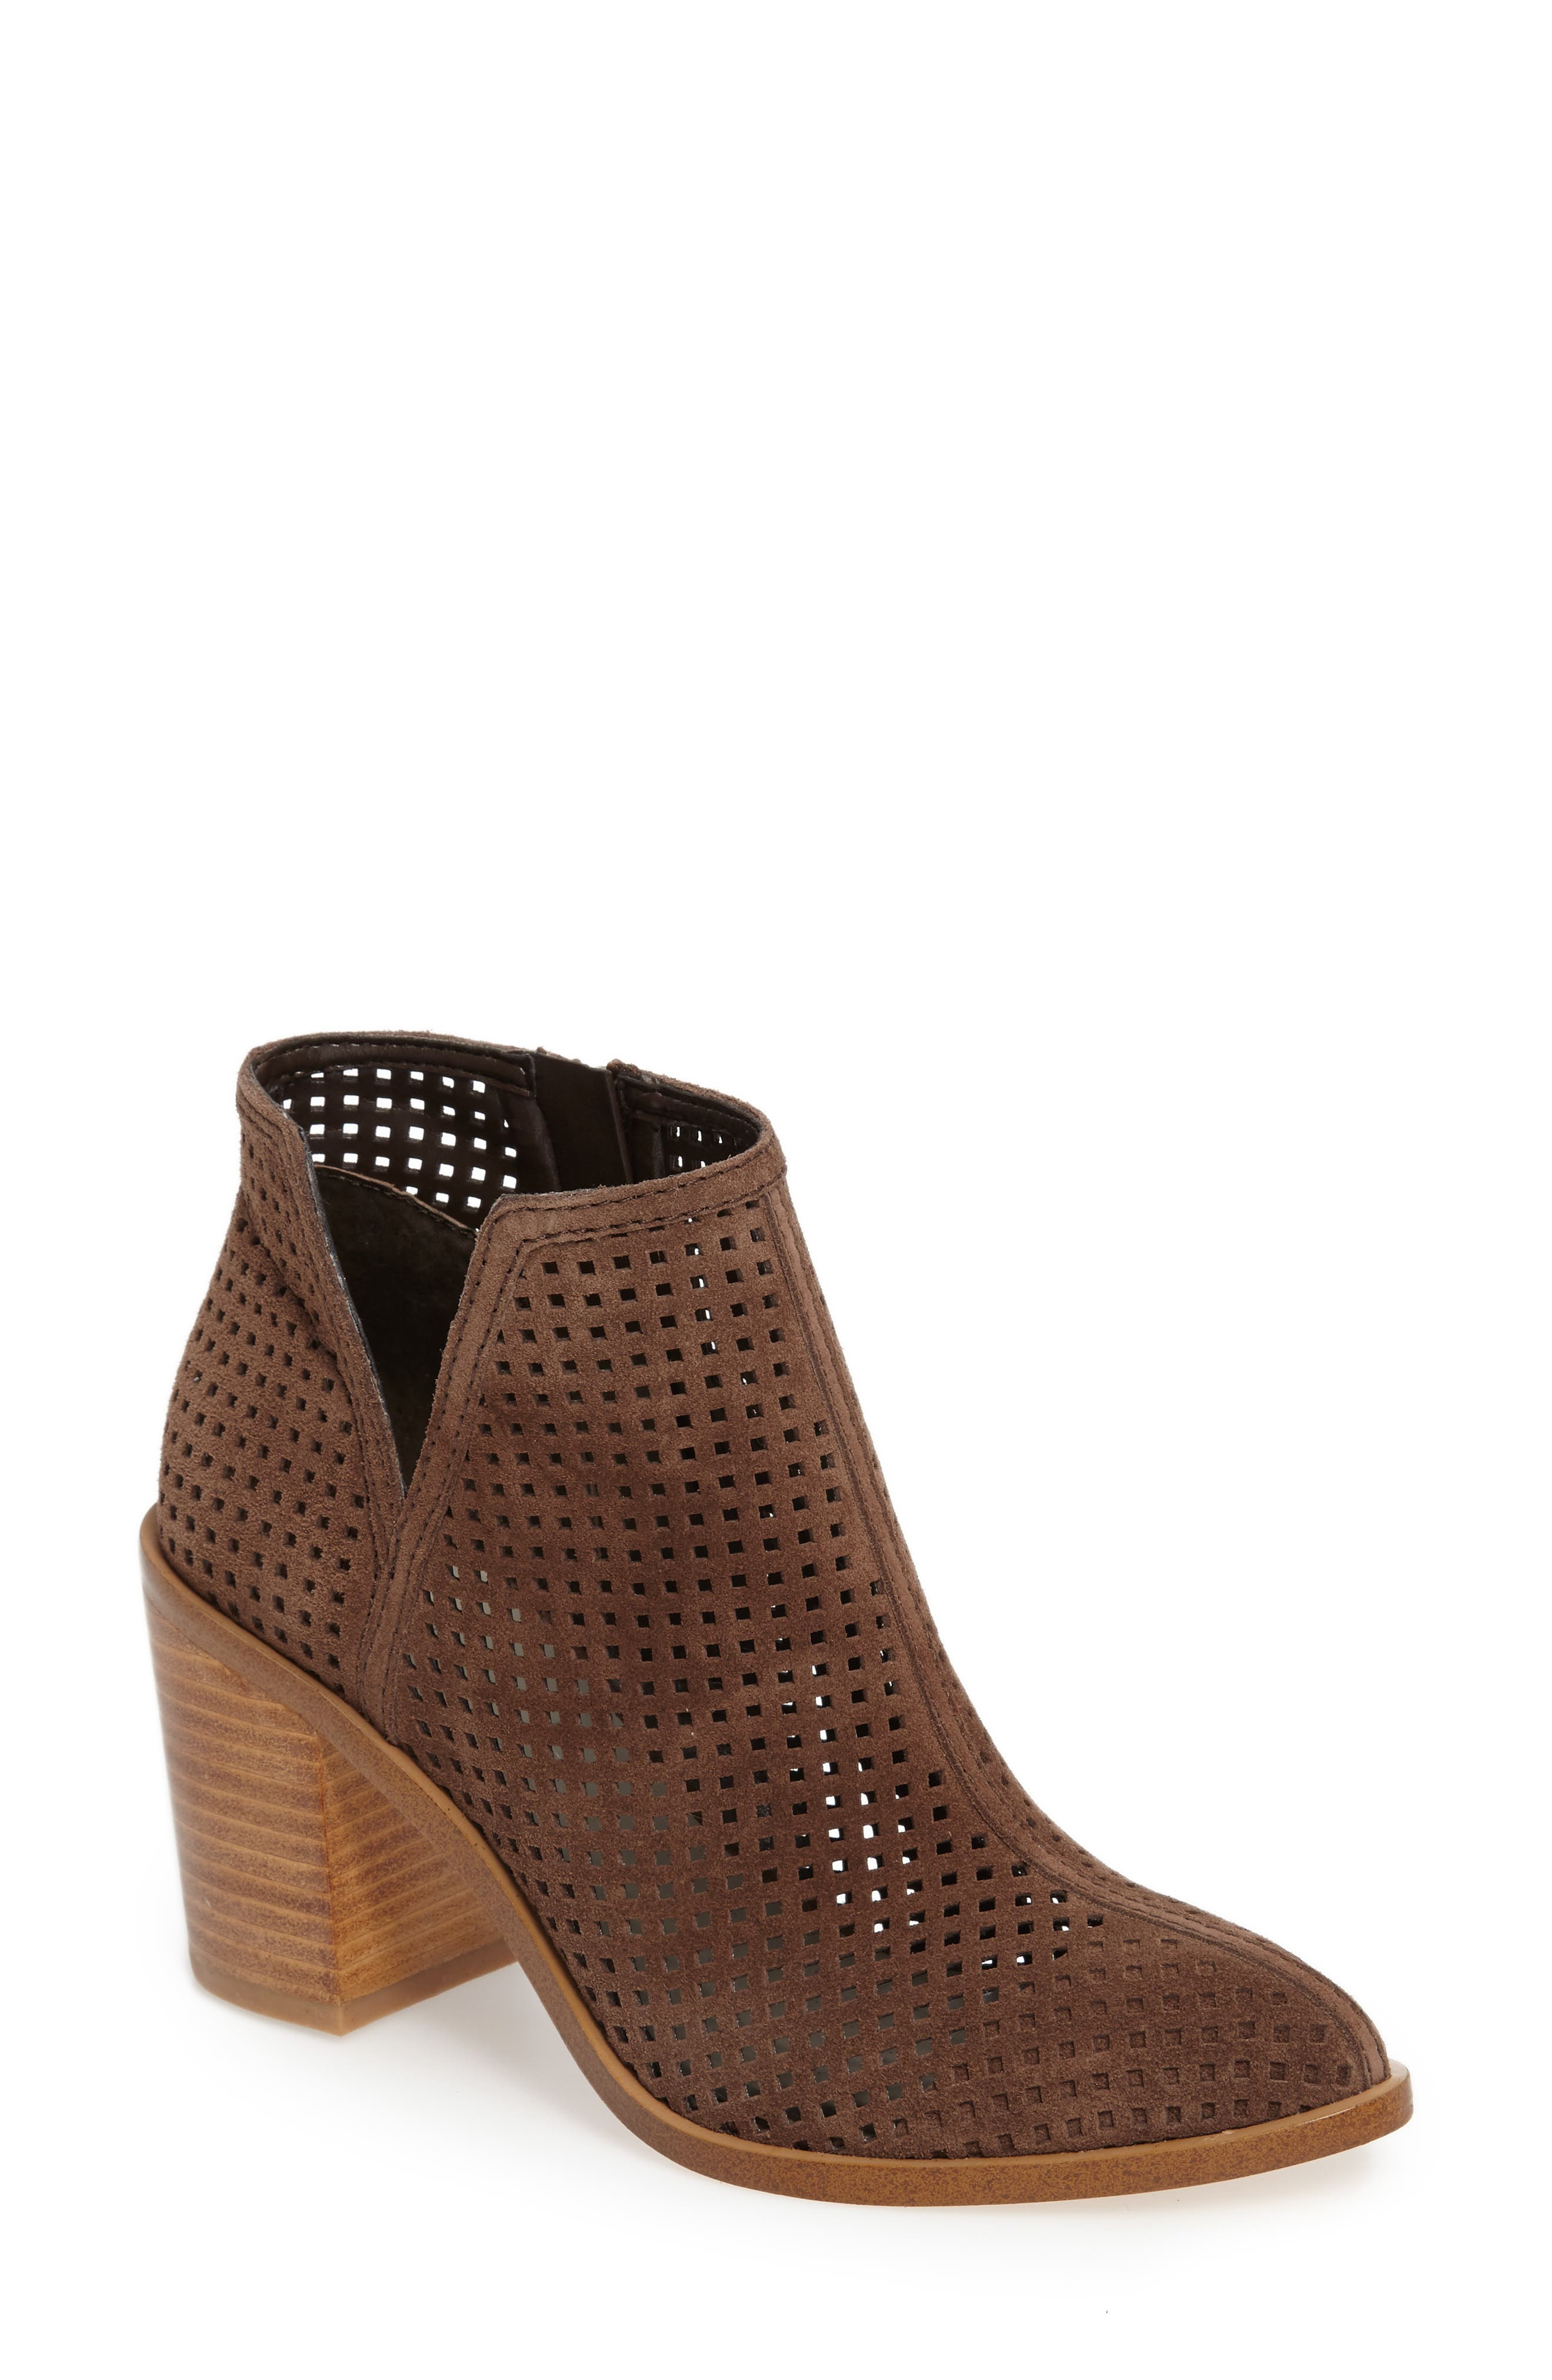 Alternate Image 1 Selected - 1. STATE Larocka Perforated Bootie (Women)